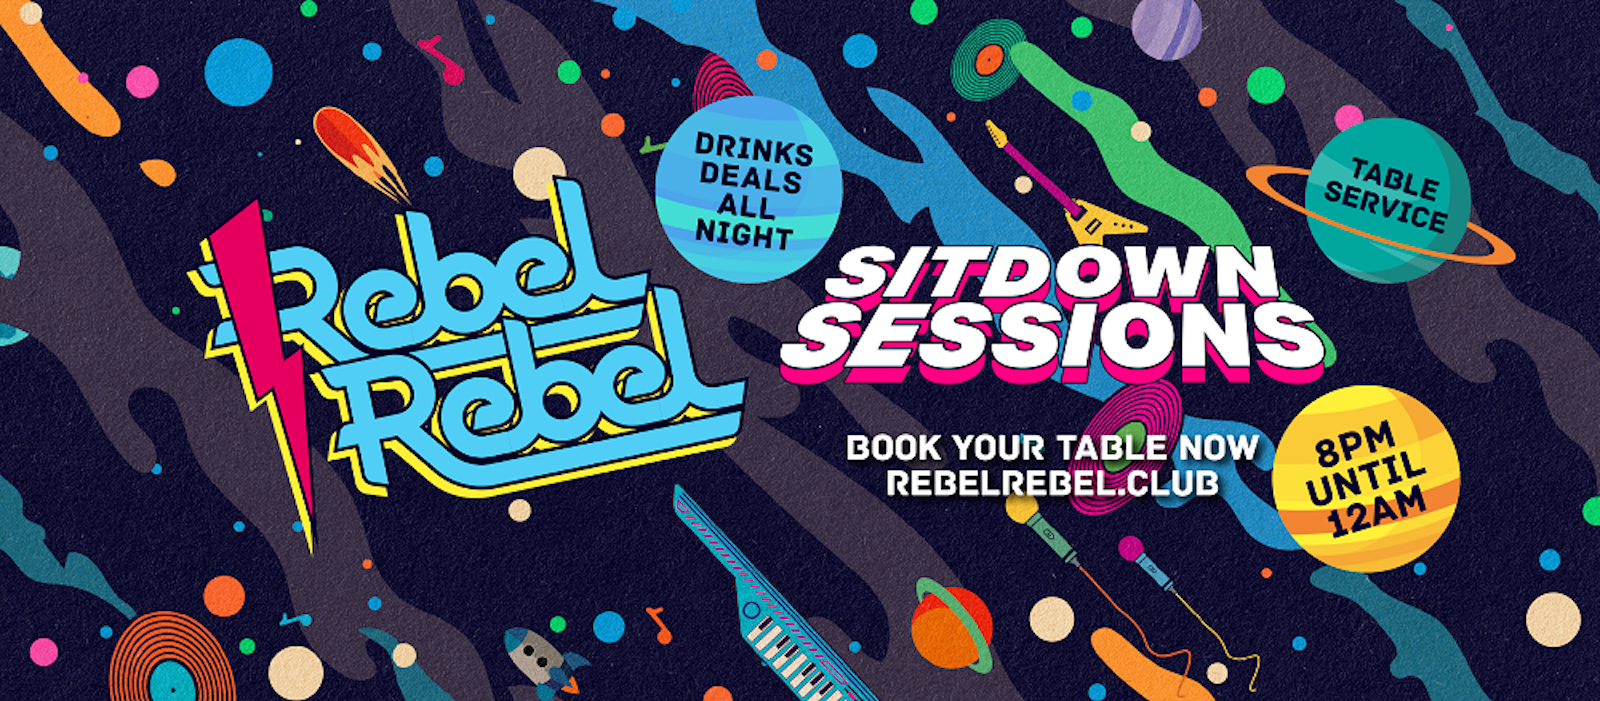 Rebel Rebel – The Sit Down Sessions 29/08/20